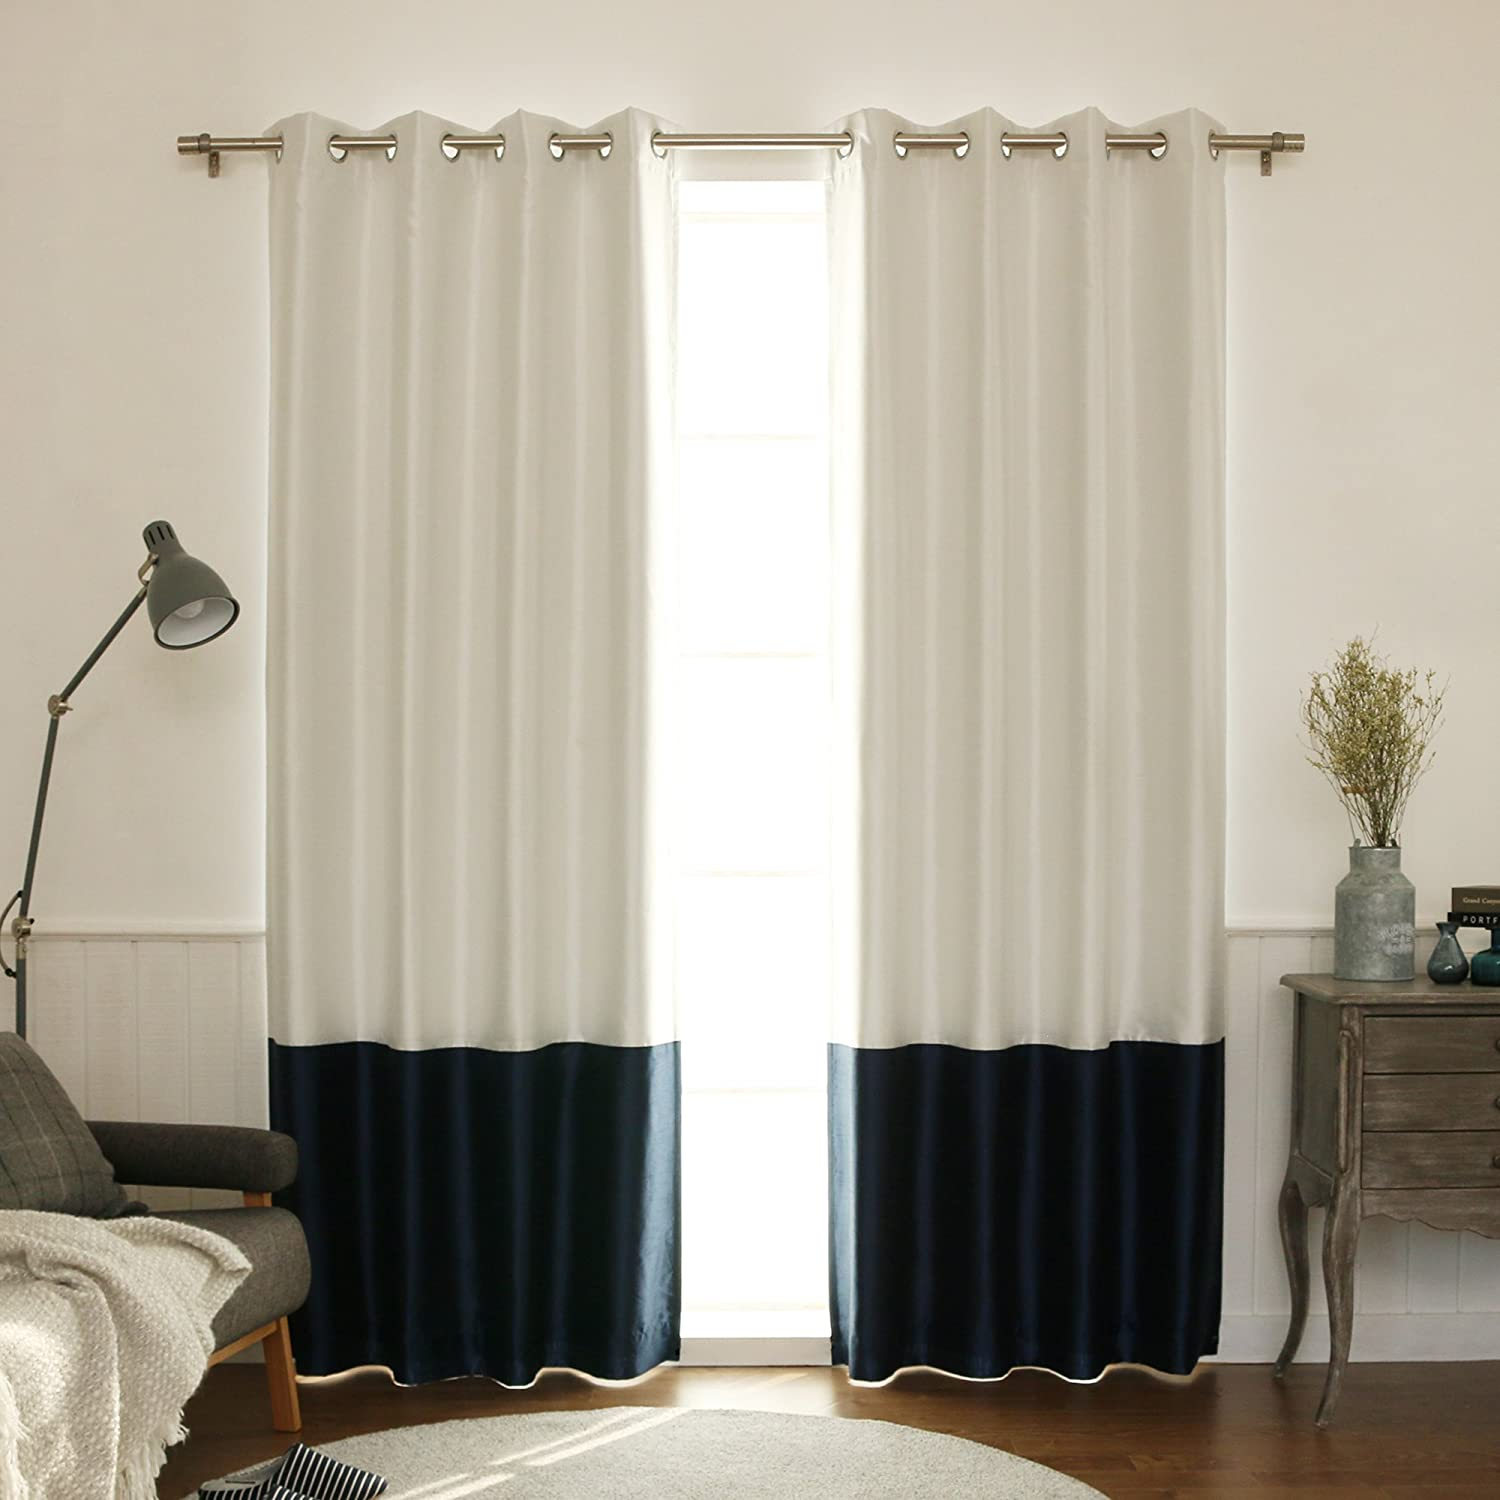 Best Home Fashion ColorBlock Faux Silk Blackout Curtain - Stainless Steel Nickel Grommet Top - Navy